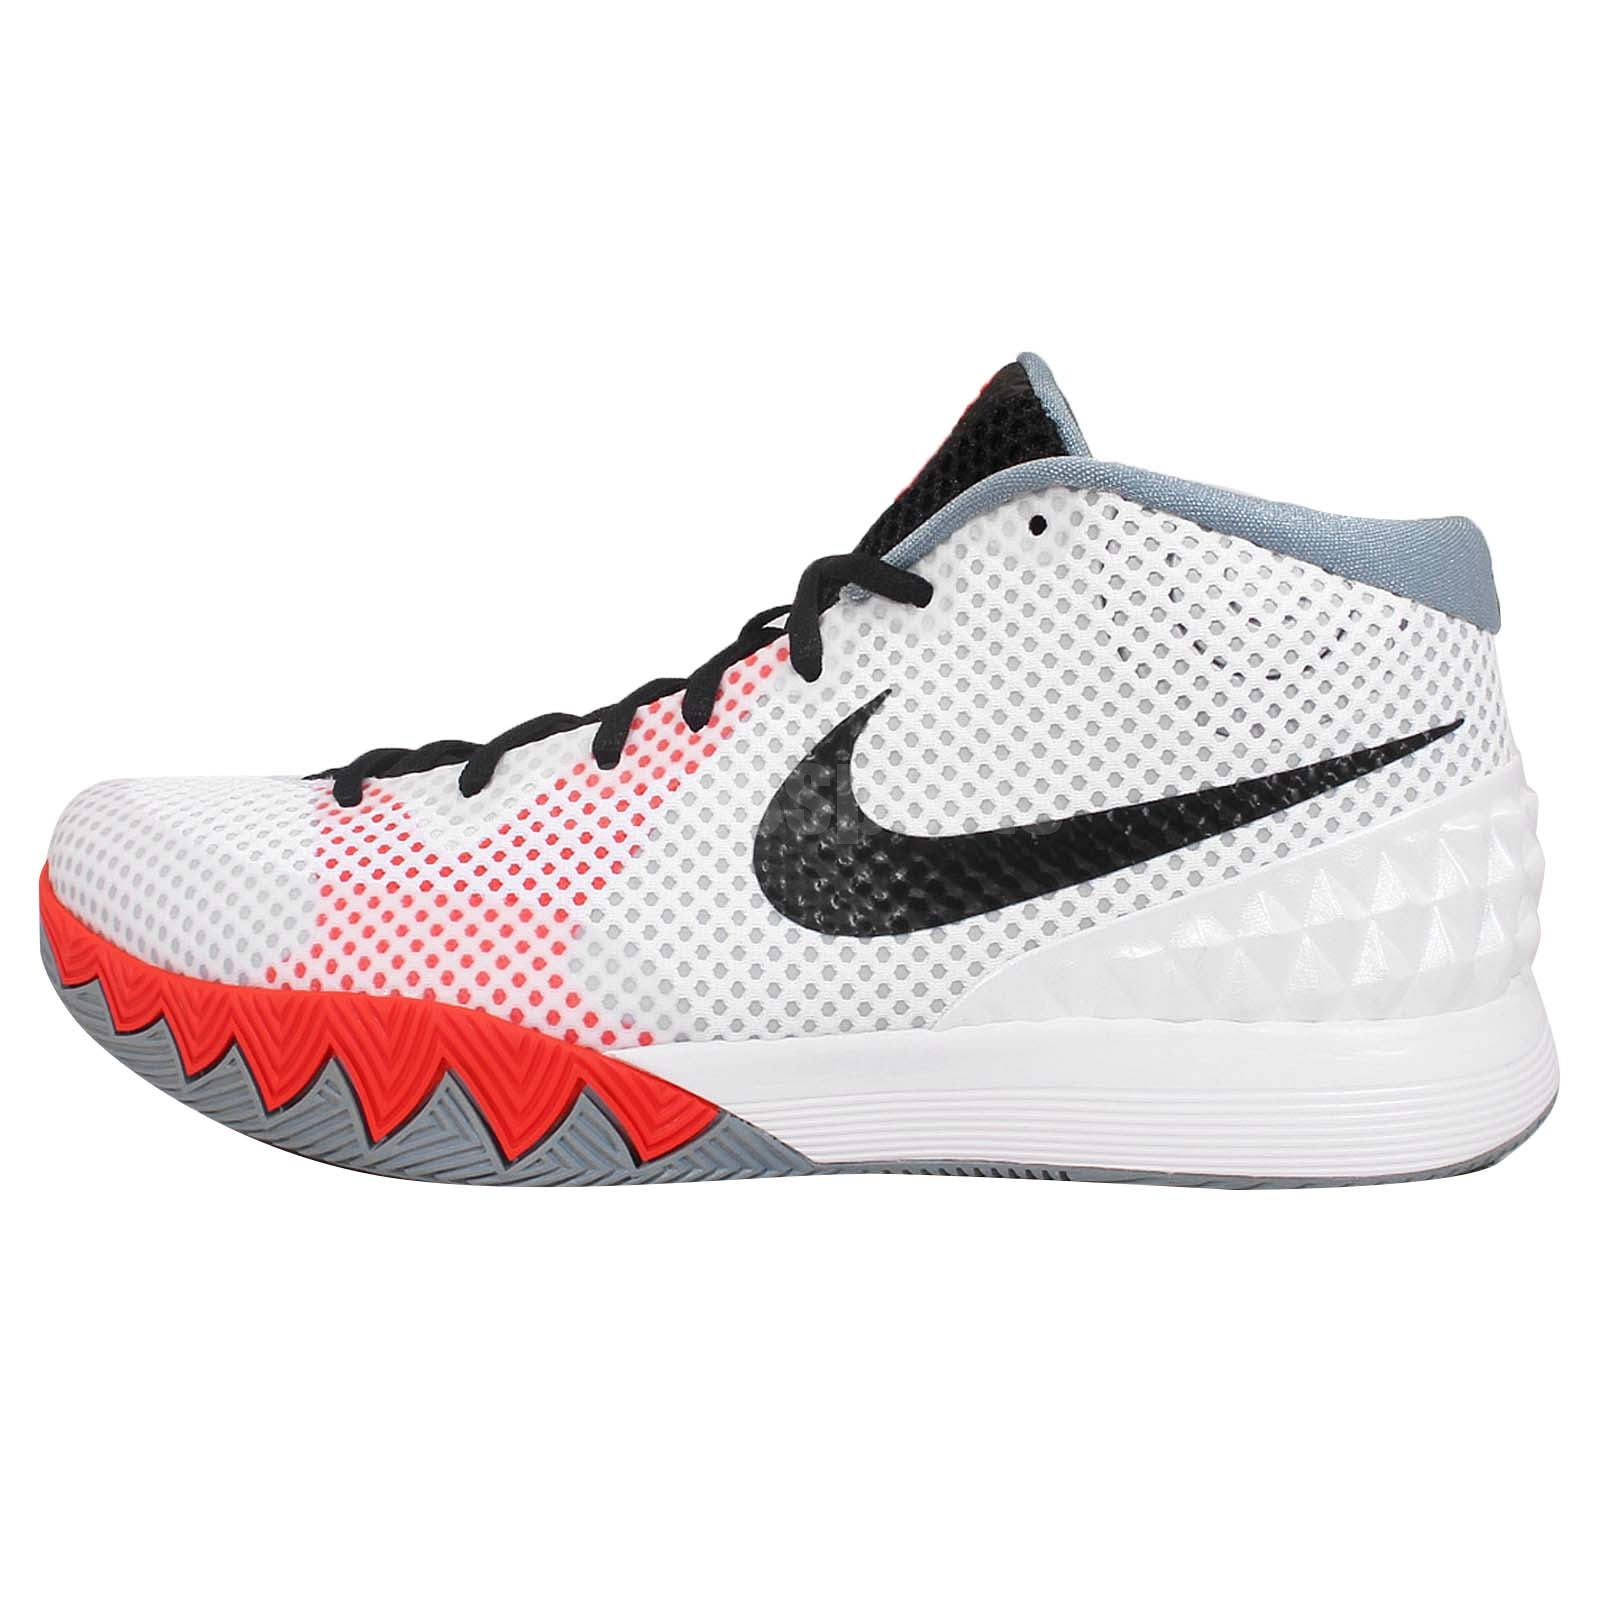 Toddler Shoes Nike Kyrie